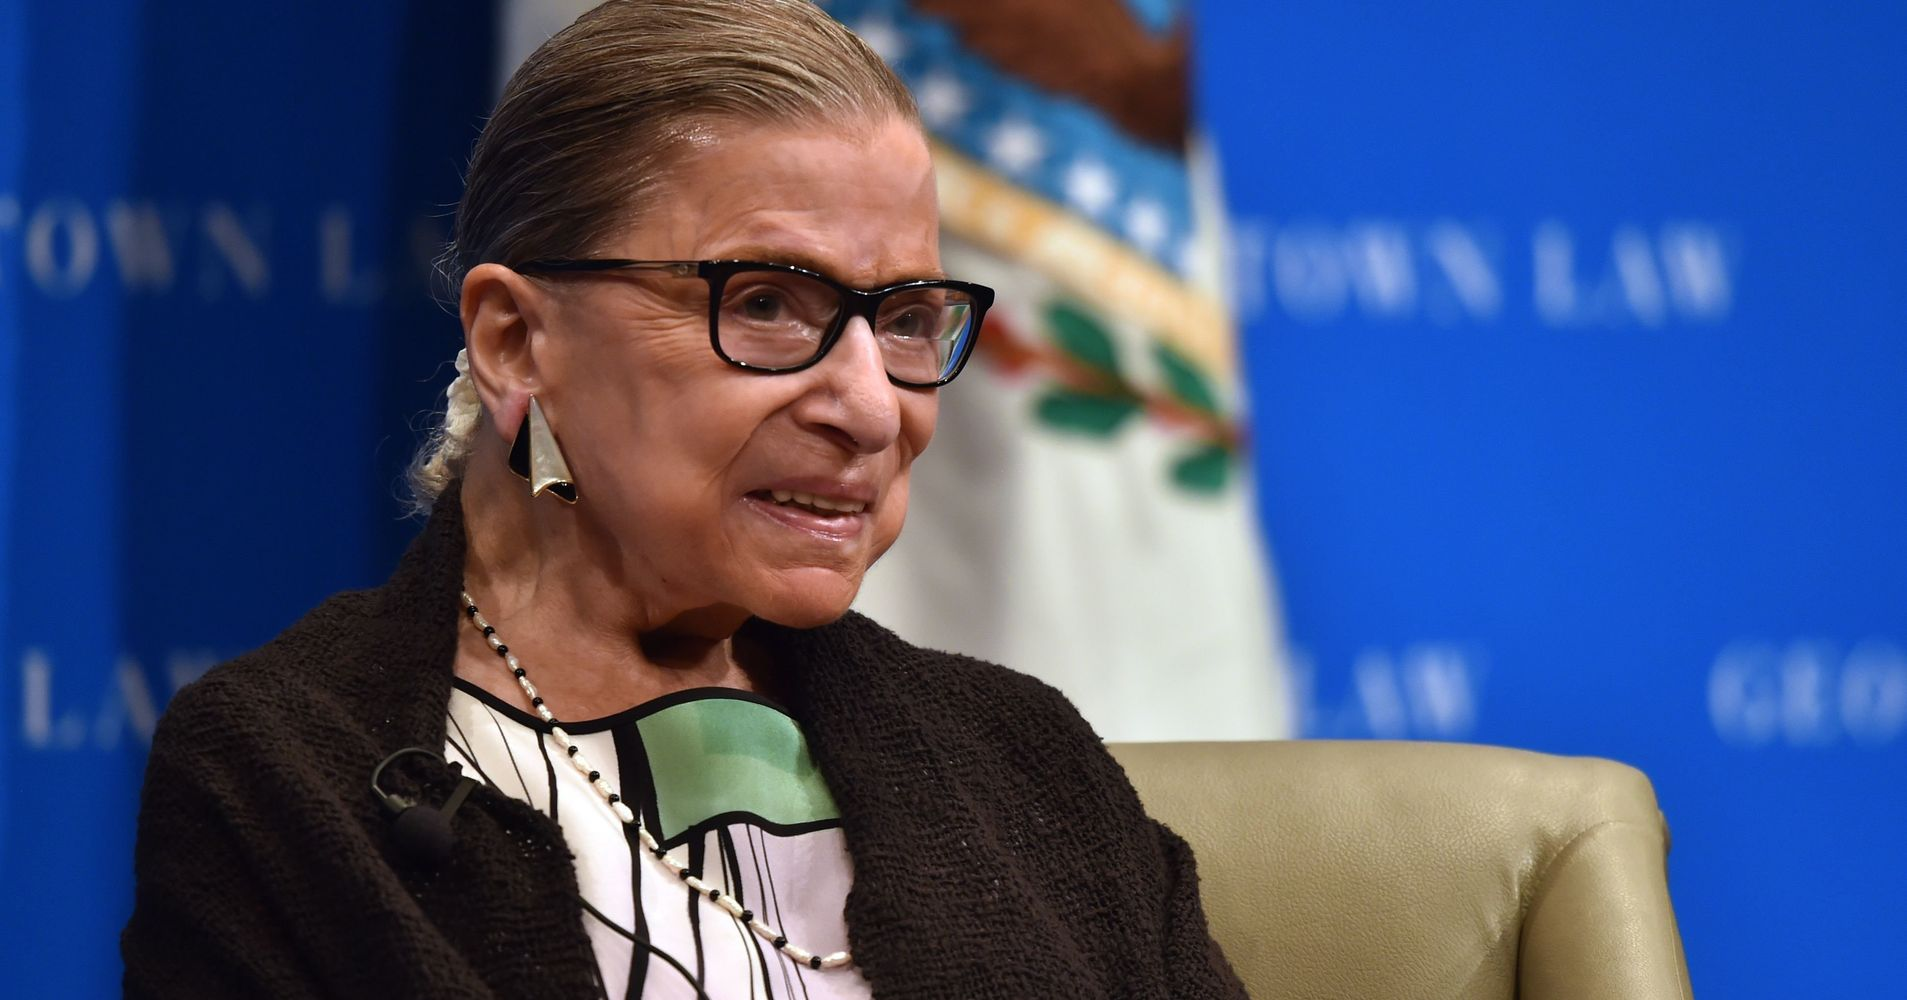 Ruth Bader Ginsburg Says She Has 'At Least 5 More Years' On Supreme Court